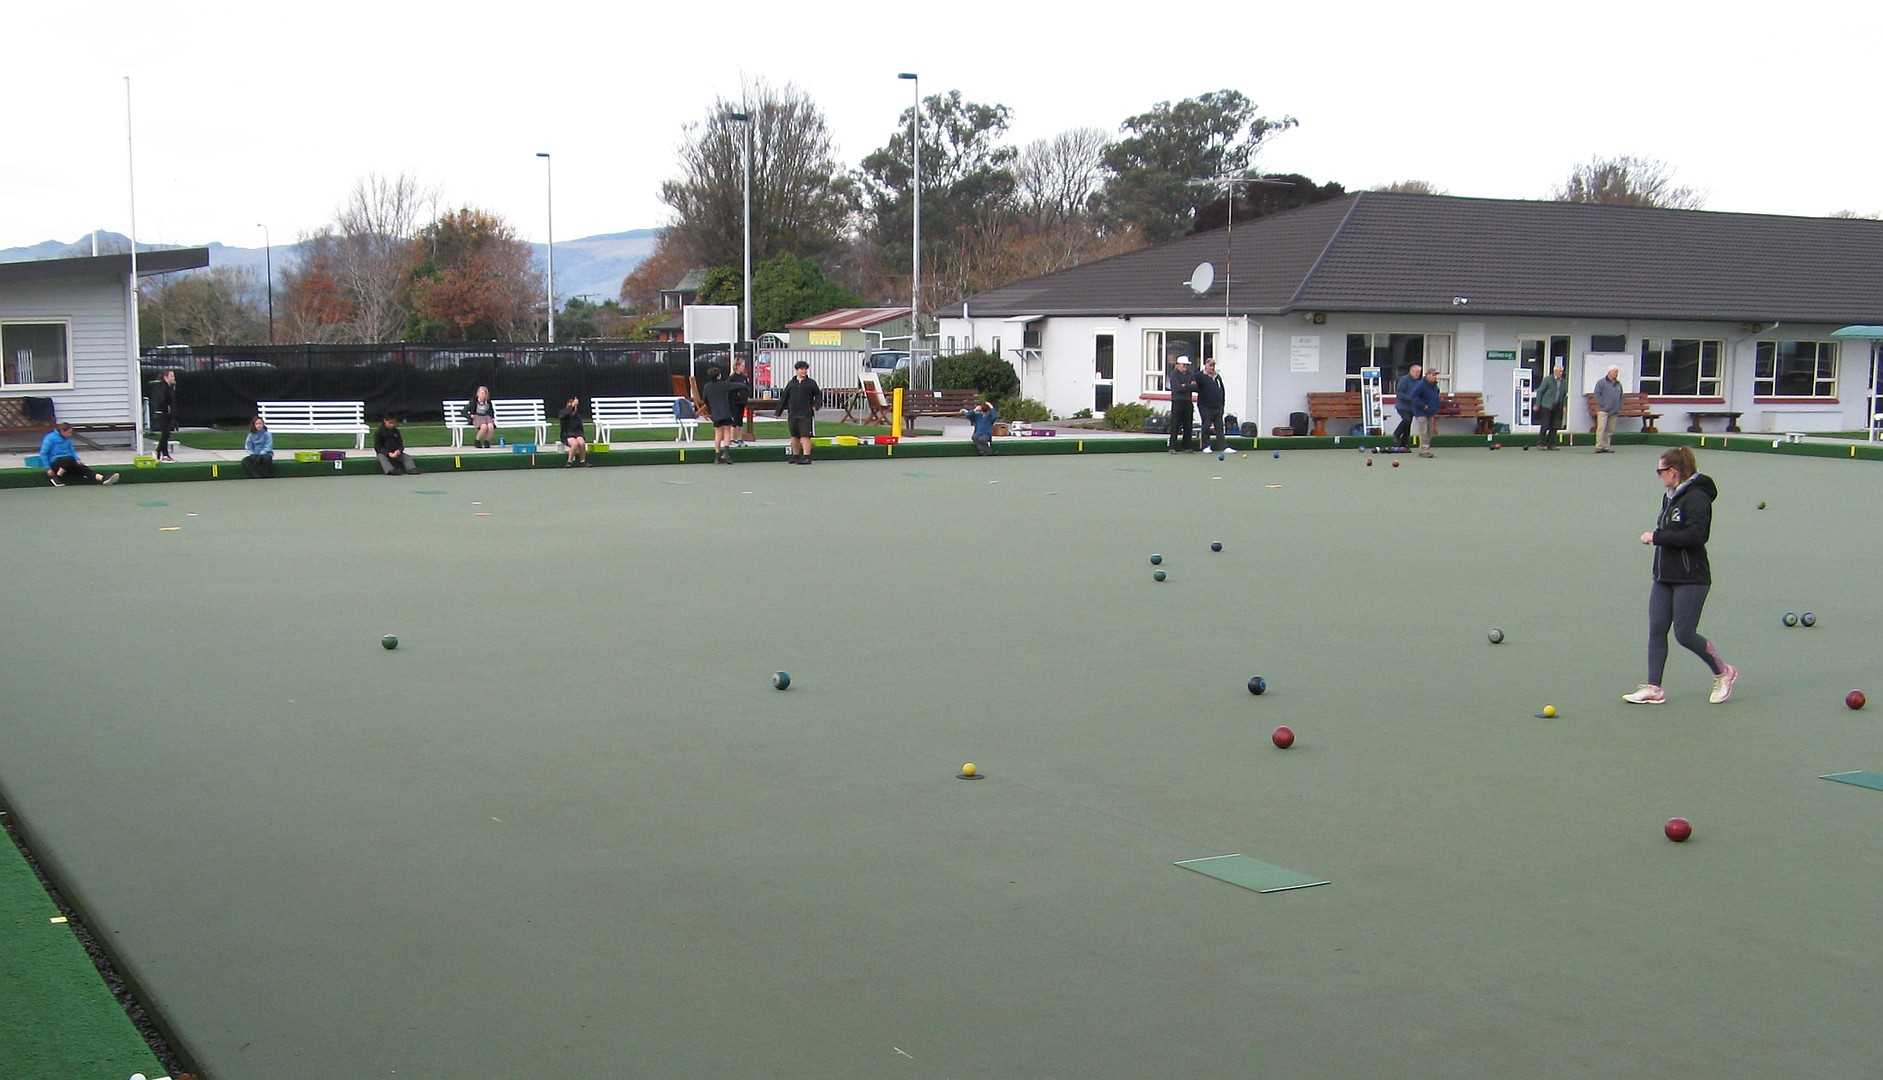 Midwinter at the LBC - Members Roll-up and Bowls for Schools